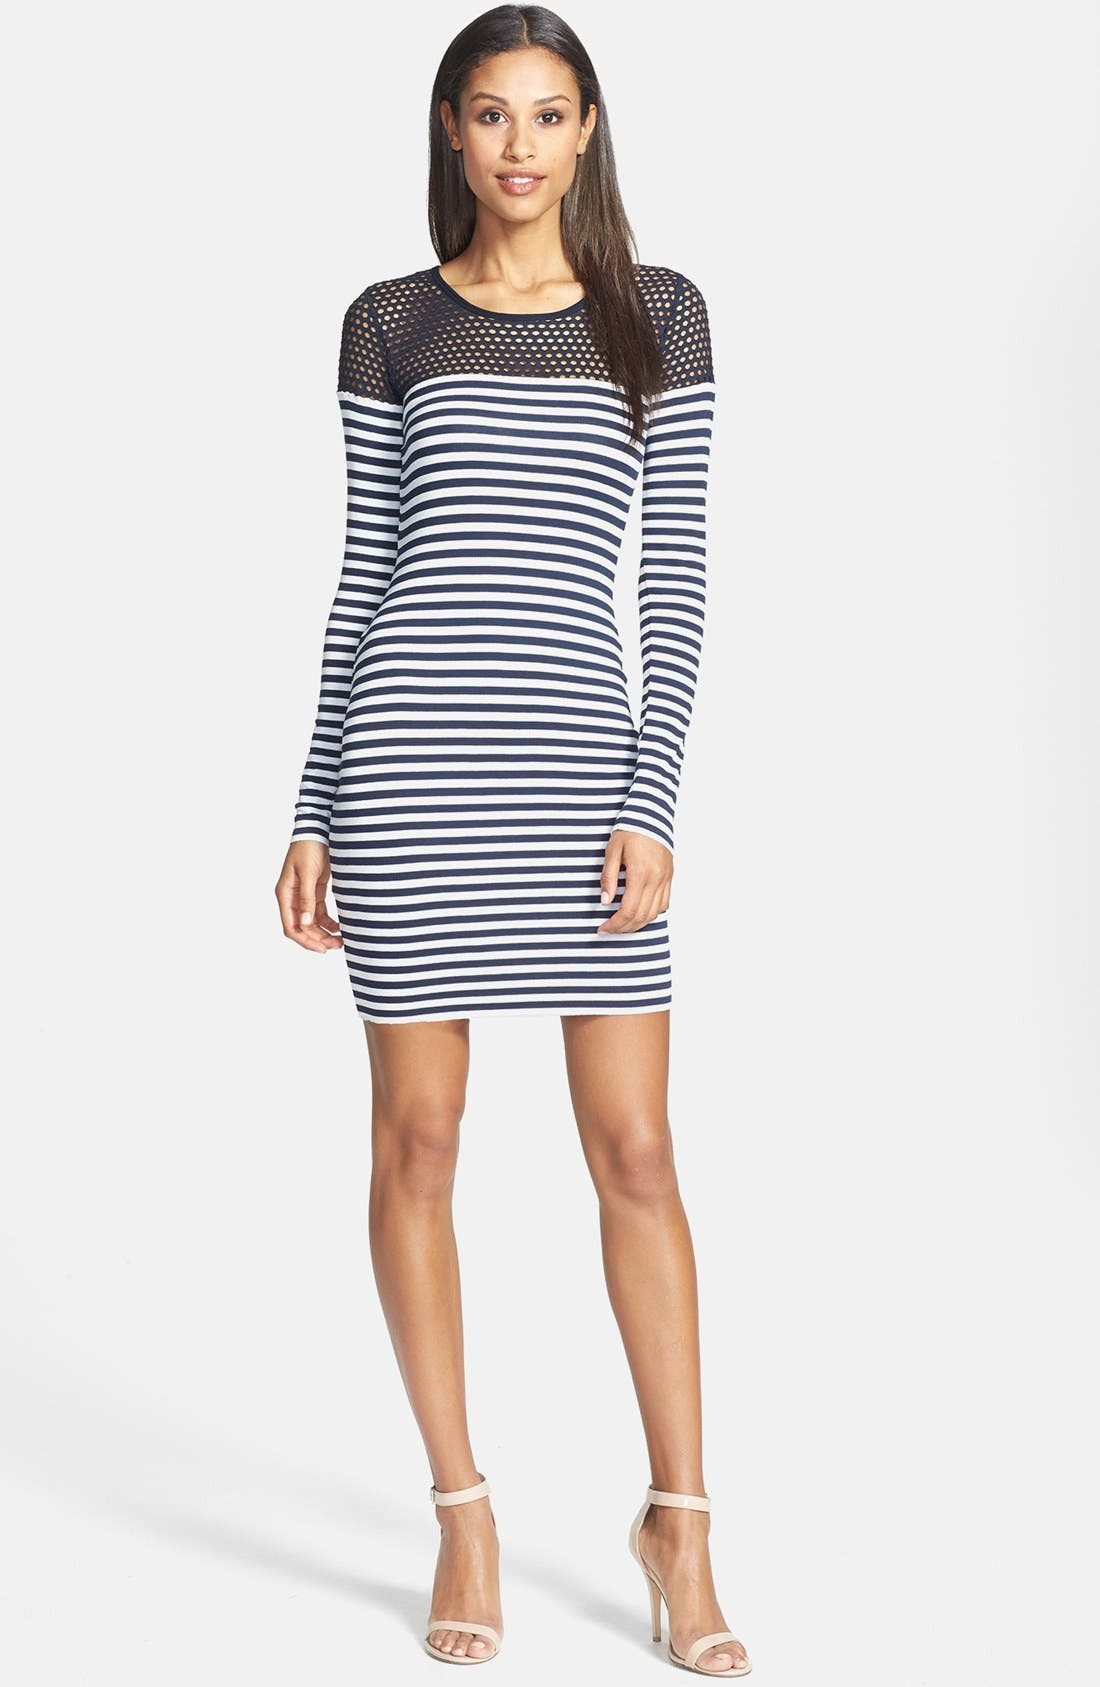 Alternate Image 1 Selected - B44 Dressed by Bailey 44 'Open Net' Stripe Jersey Dress